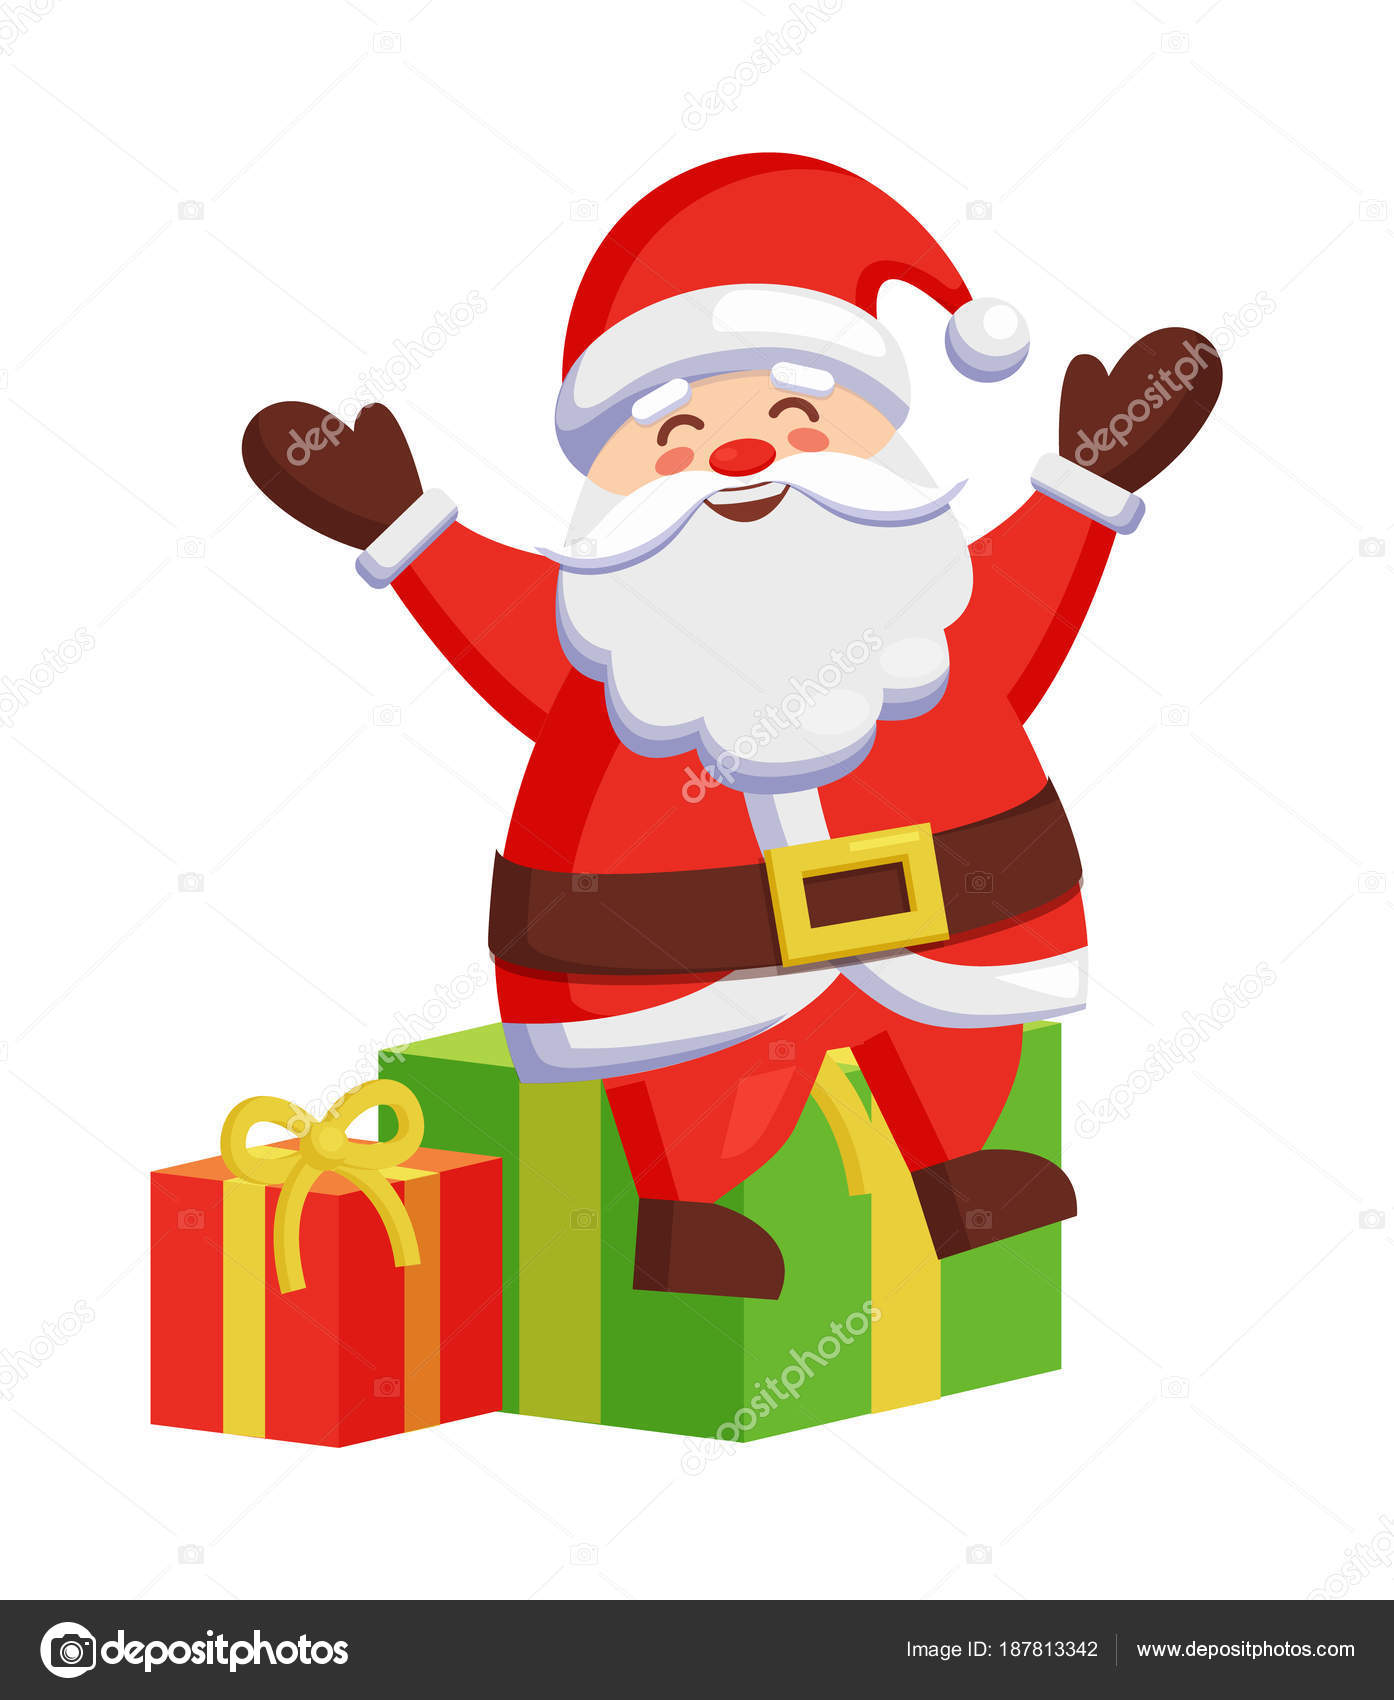 Santa Claus Sitting On Colorful Gift Boxes Icon Stock Vector